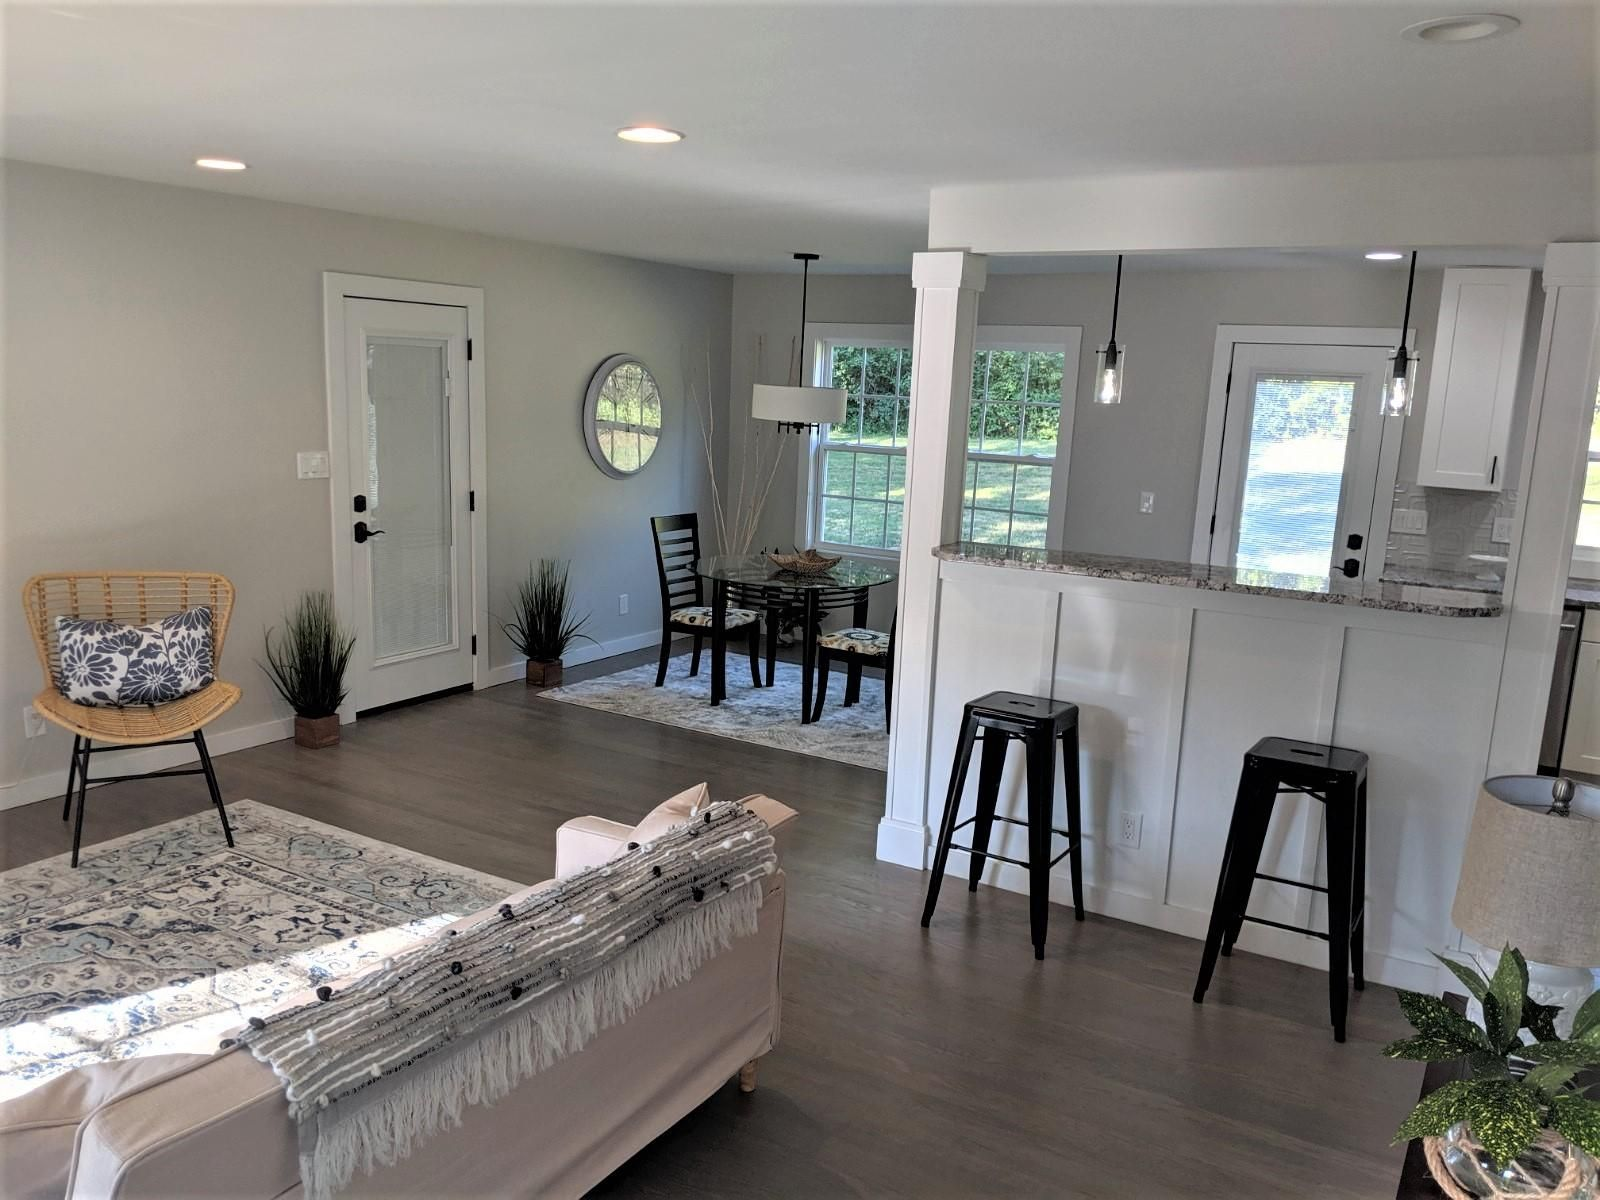 Dining/Kitchen/Living